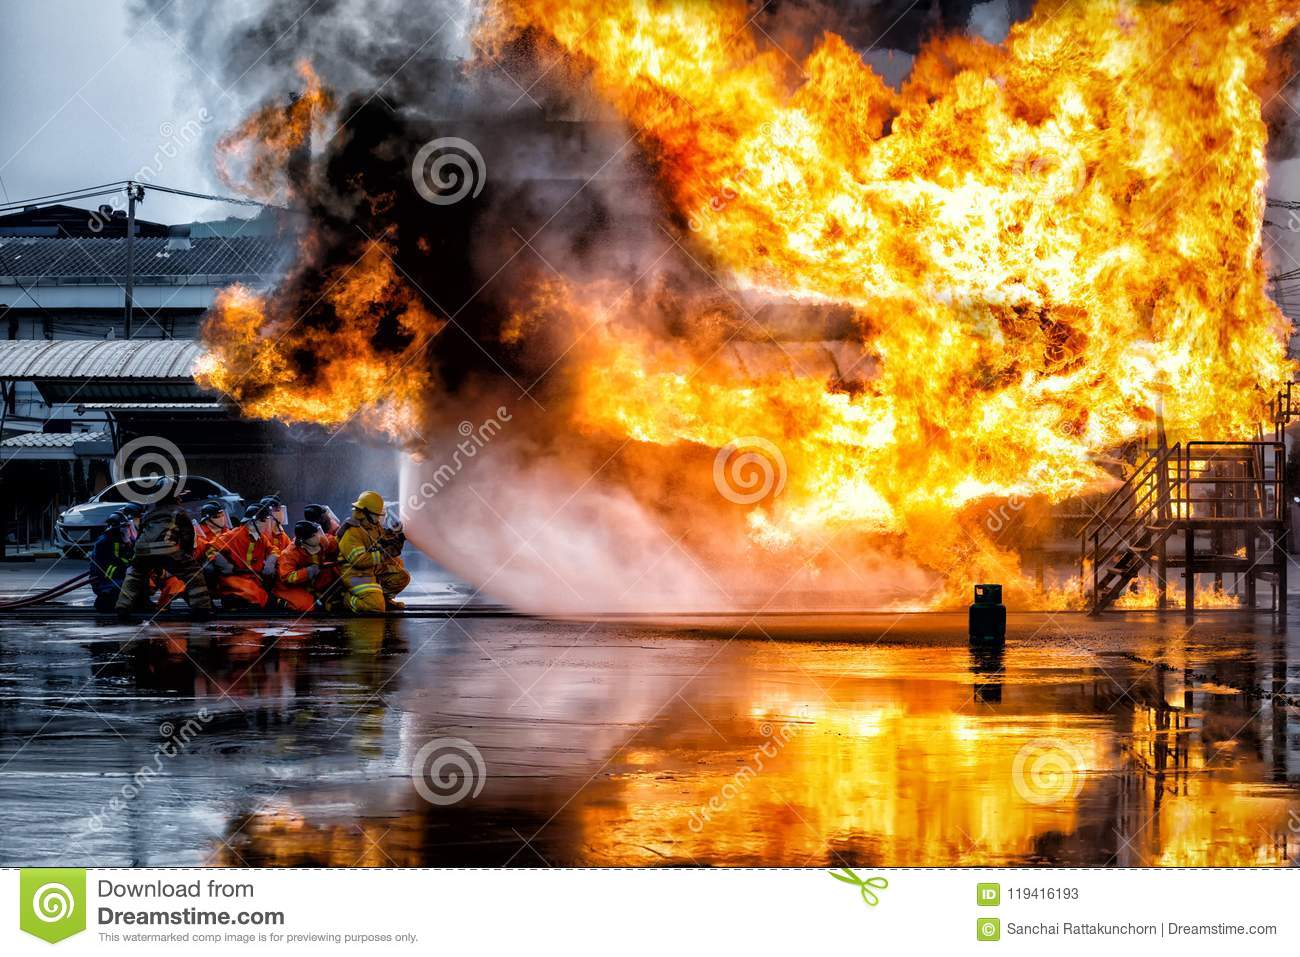 firefighter training., fireman using water and extinguisher to f